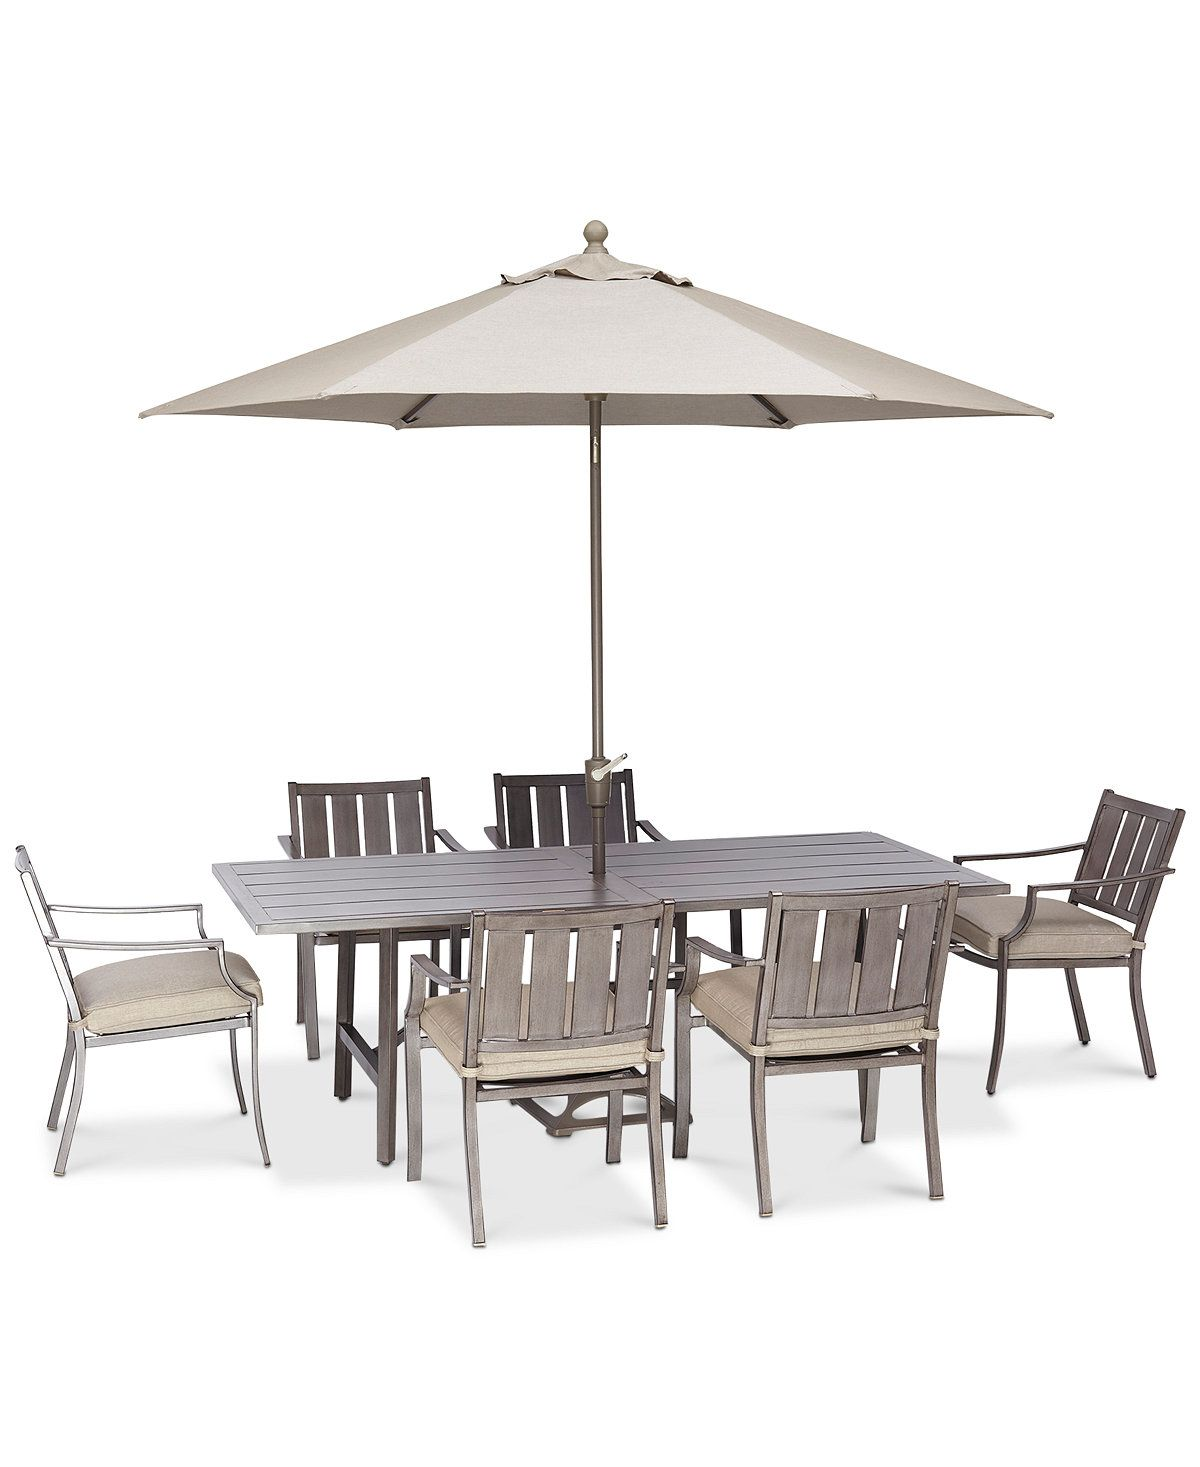 Wayland Outdoor Aluminum 7 Pc. Dining Set (84